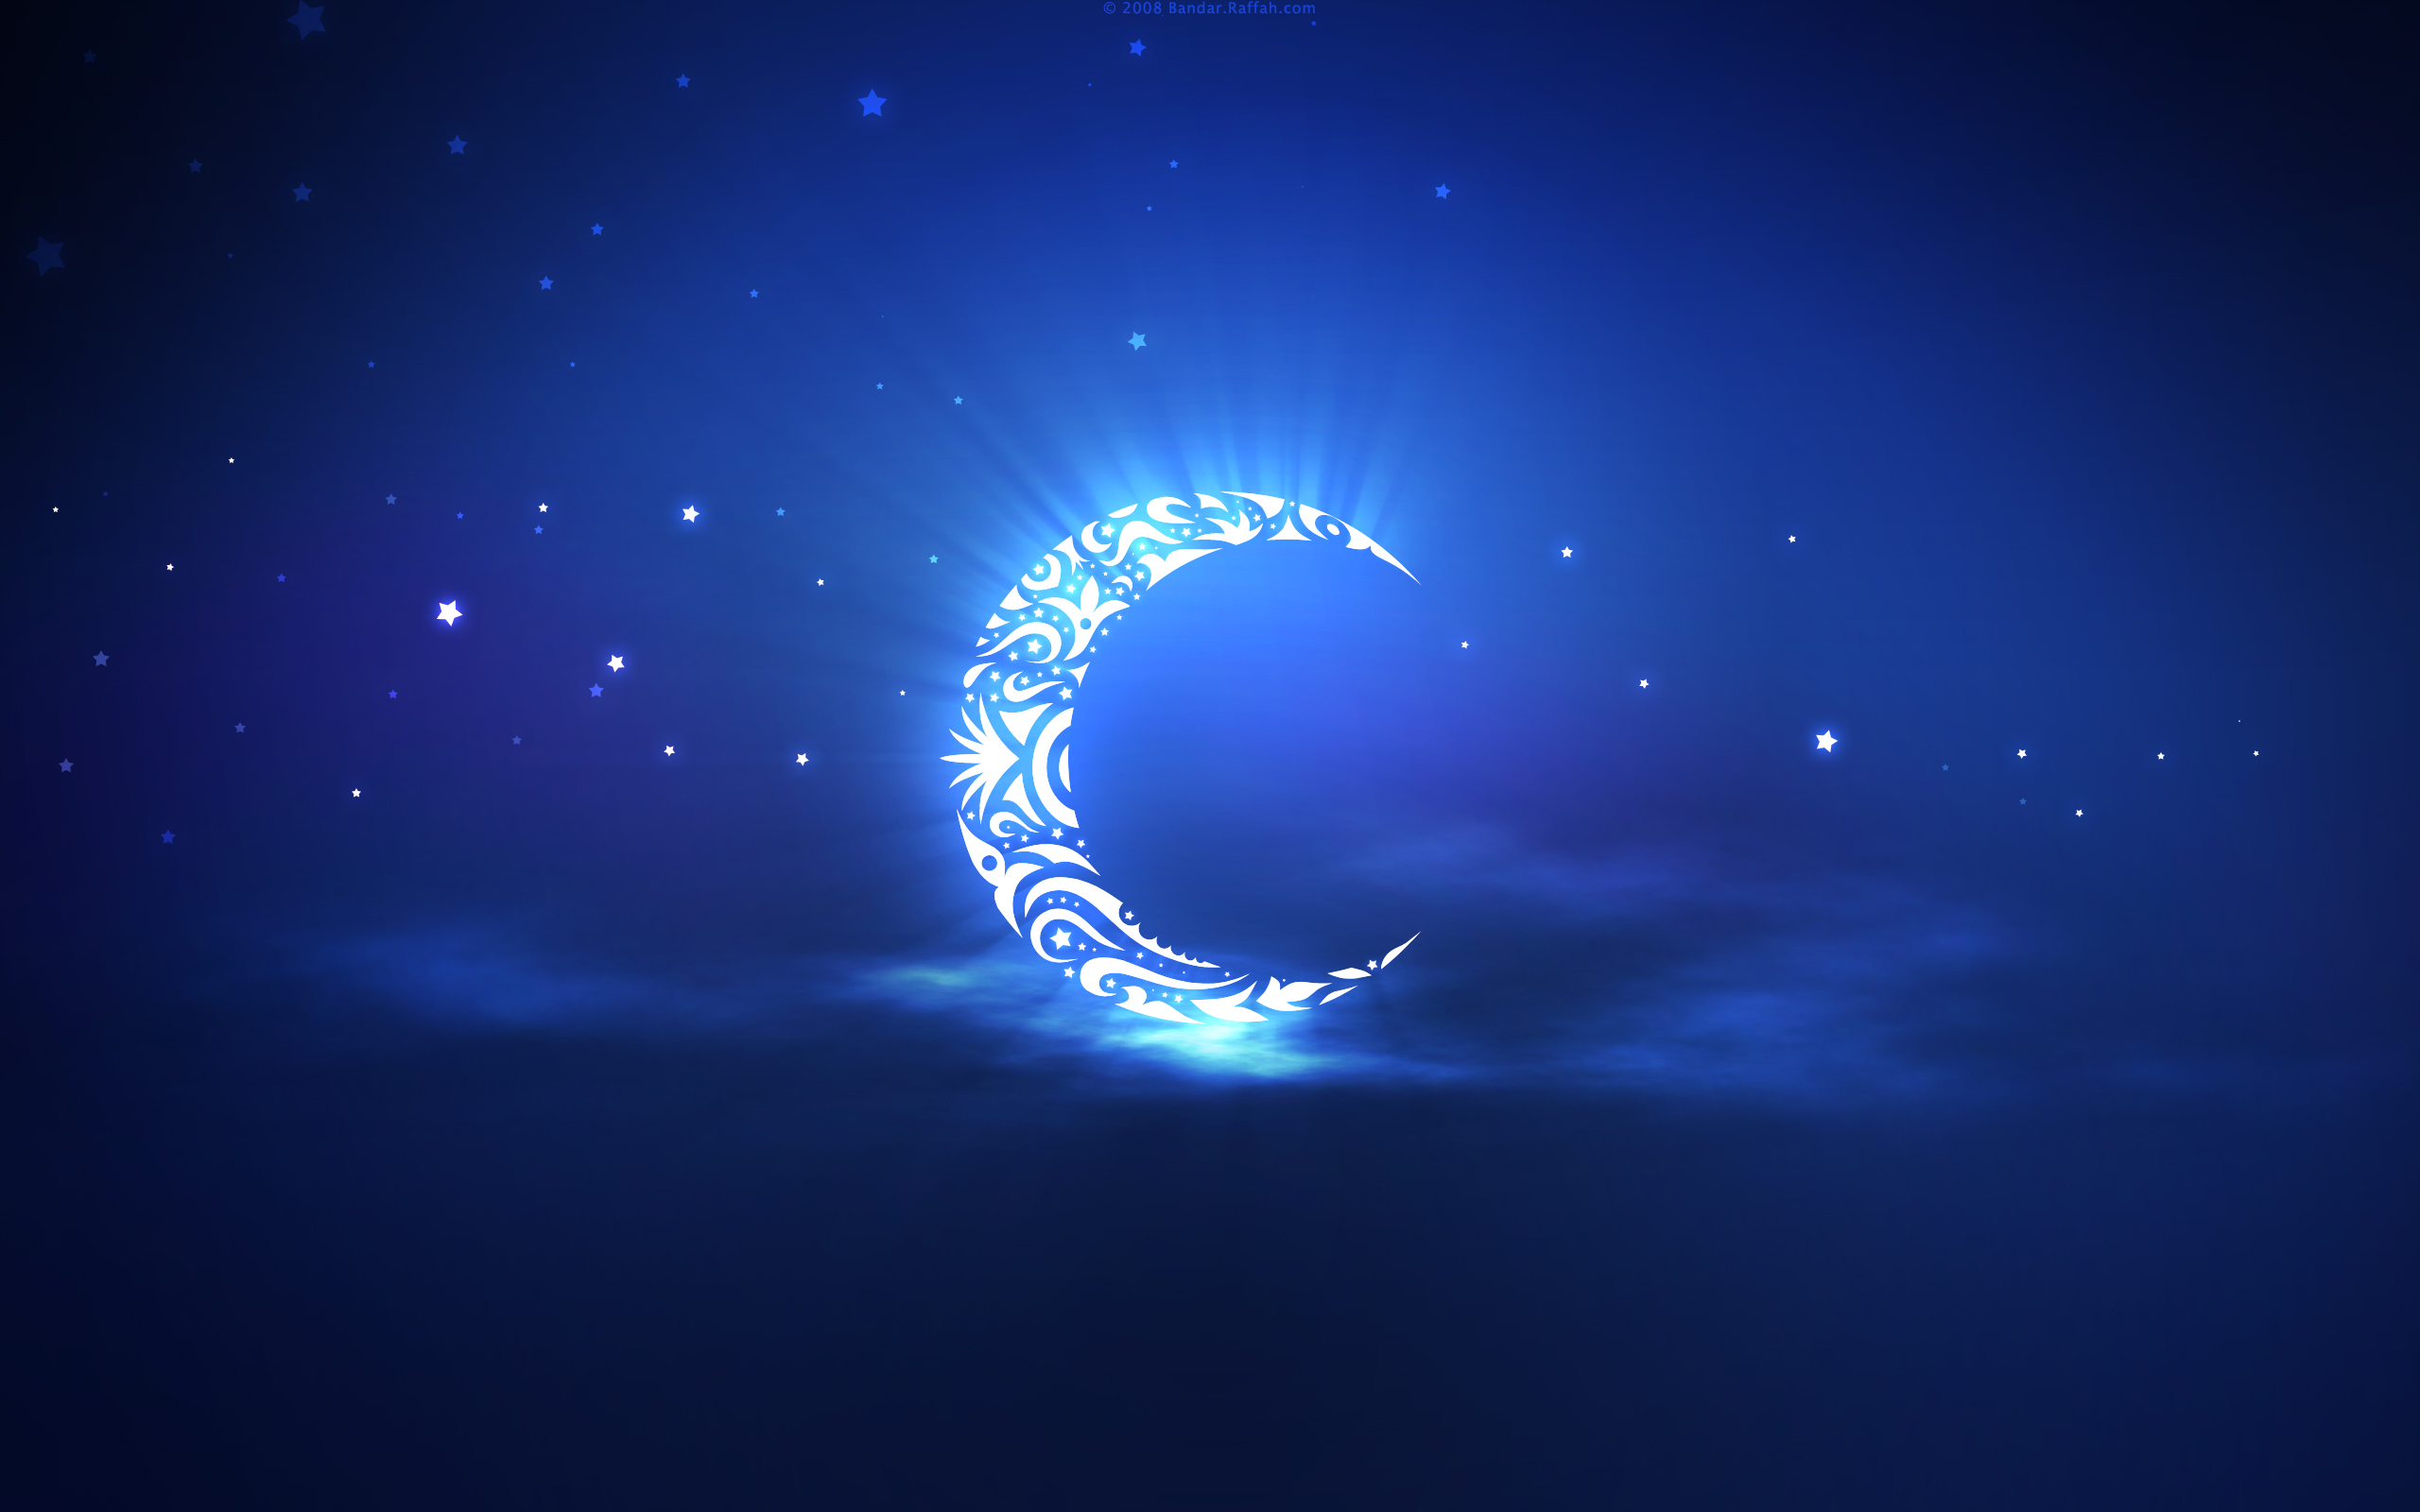 Holy Ramadan Moon Wallpapers HD Wallpapers 2560x1600